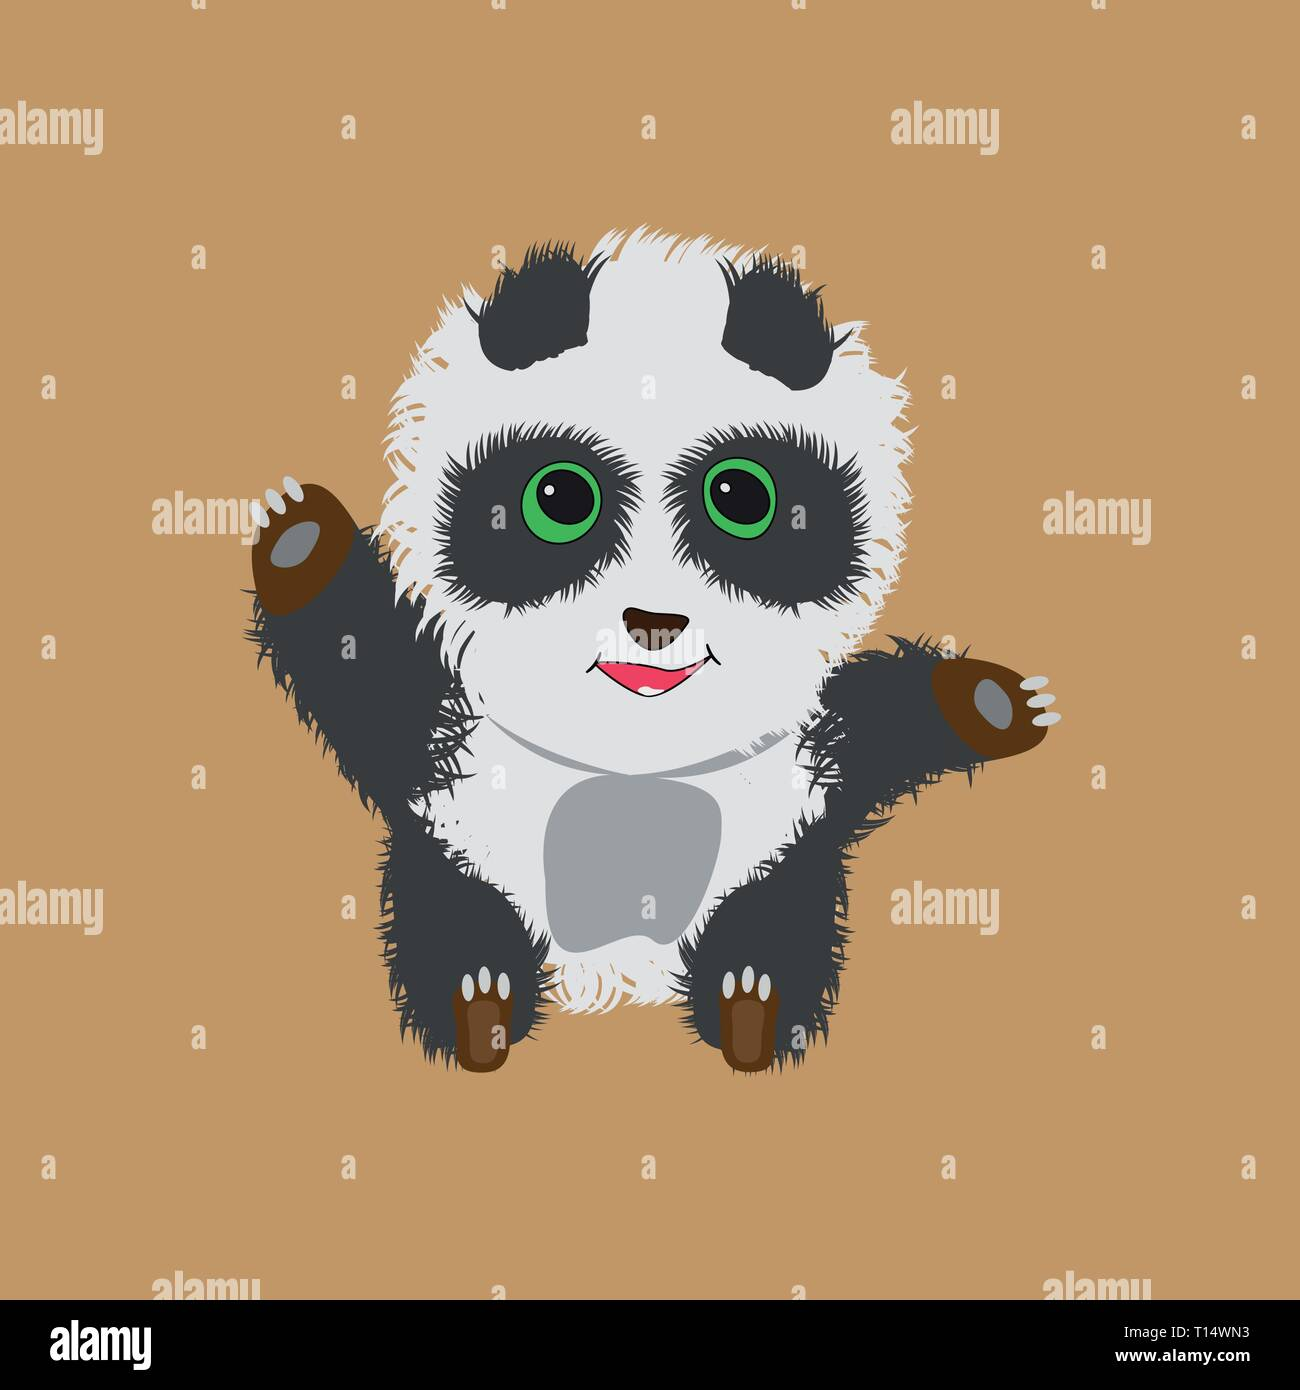 Panda Wallpaper High Resolution Stock Photography And Images Alamy